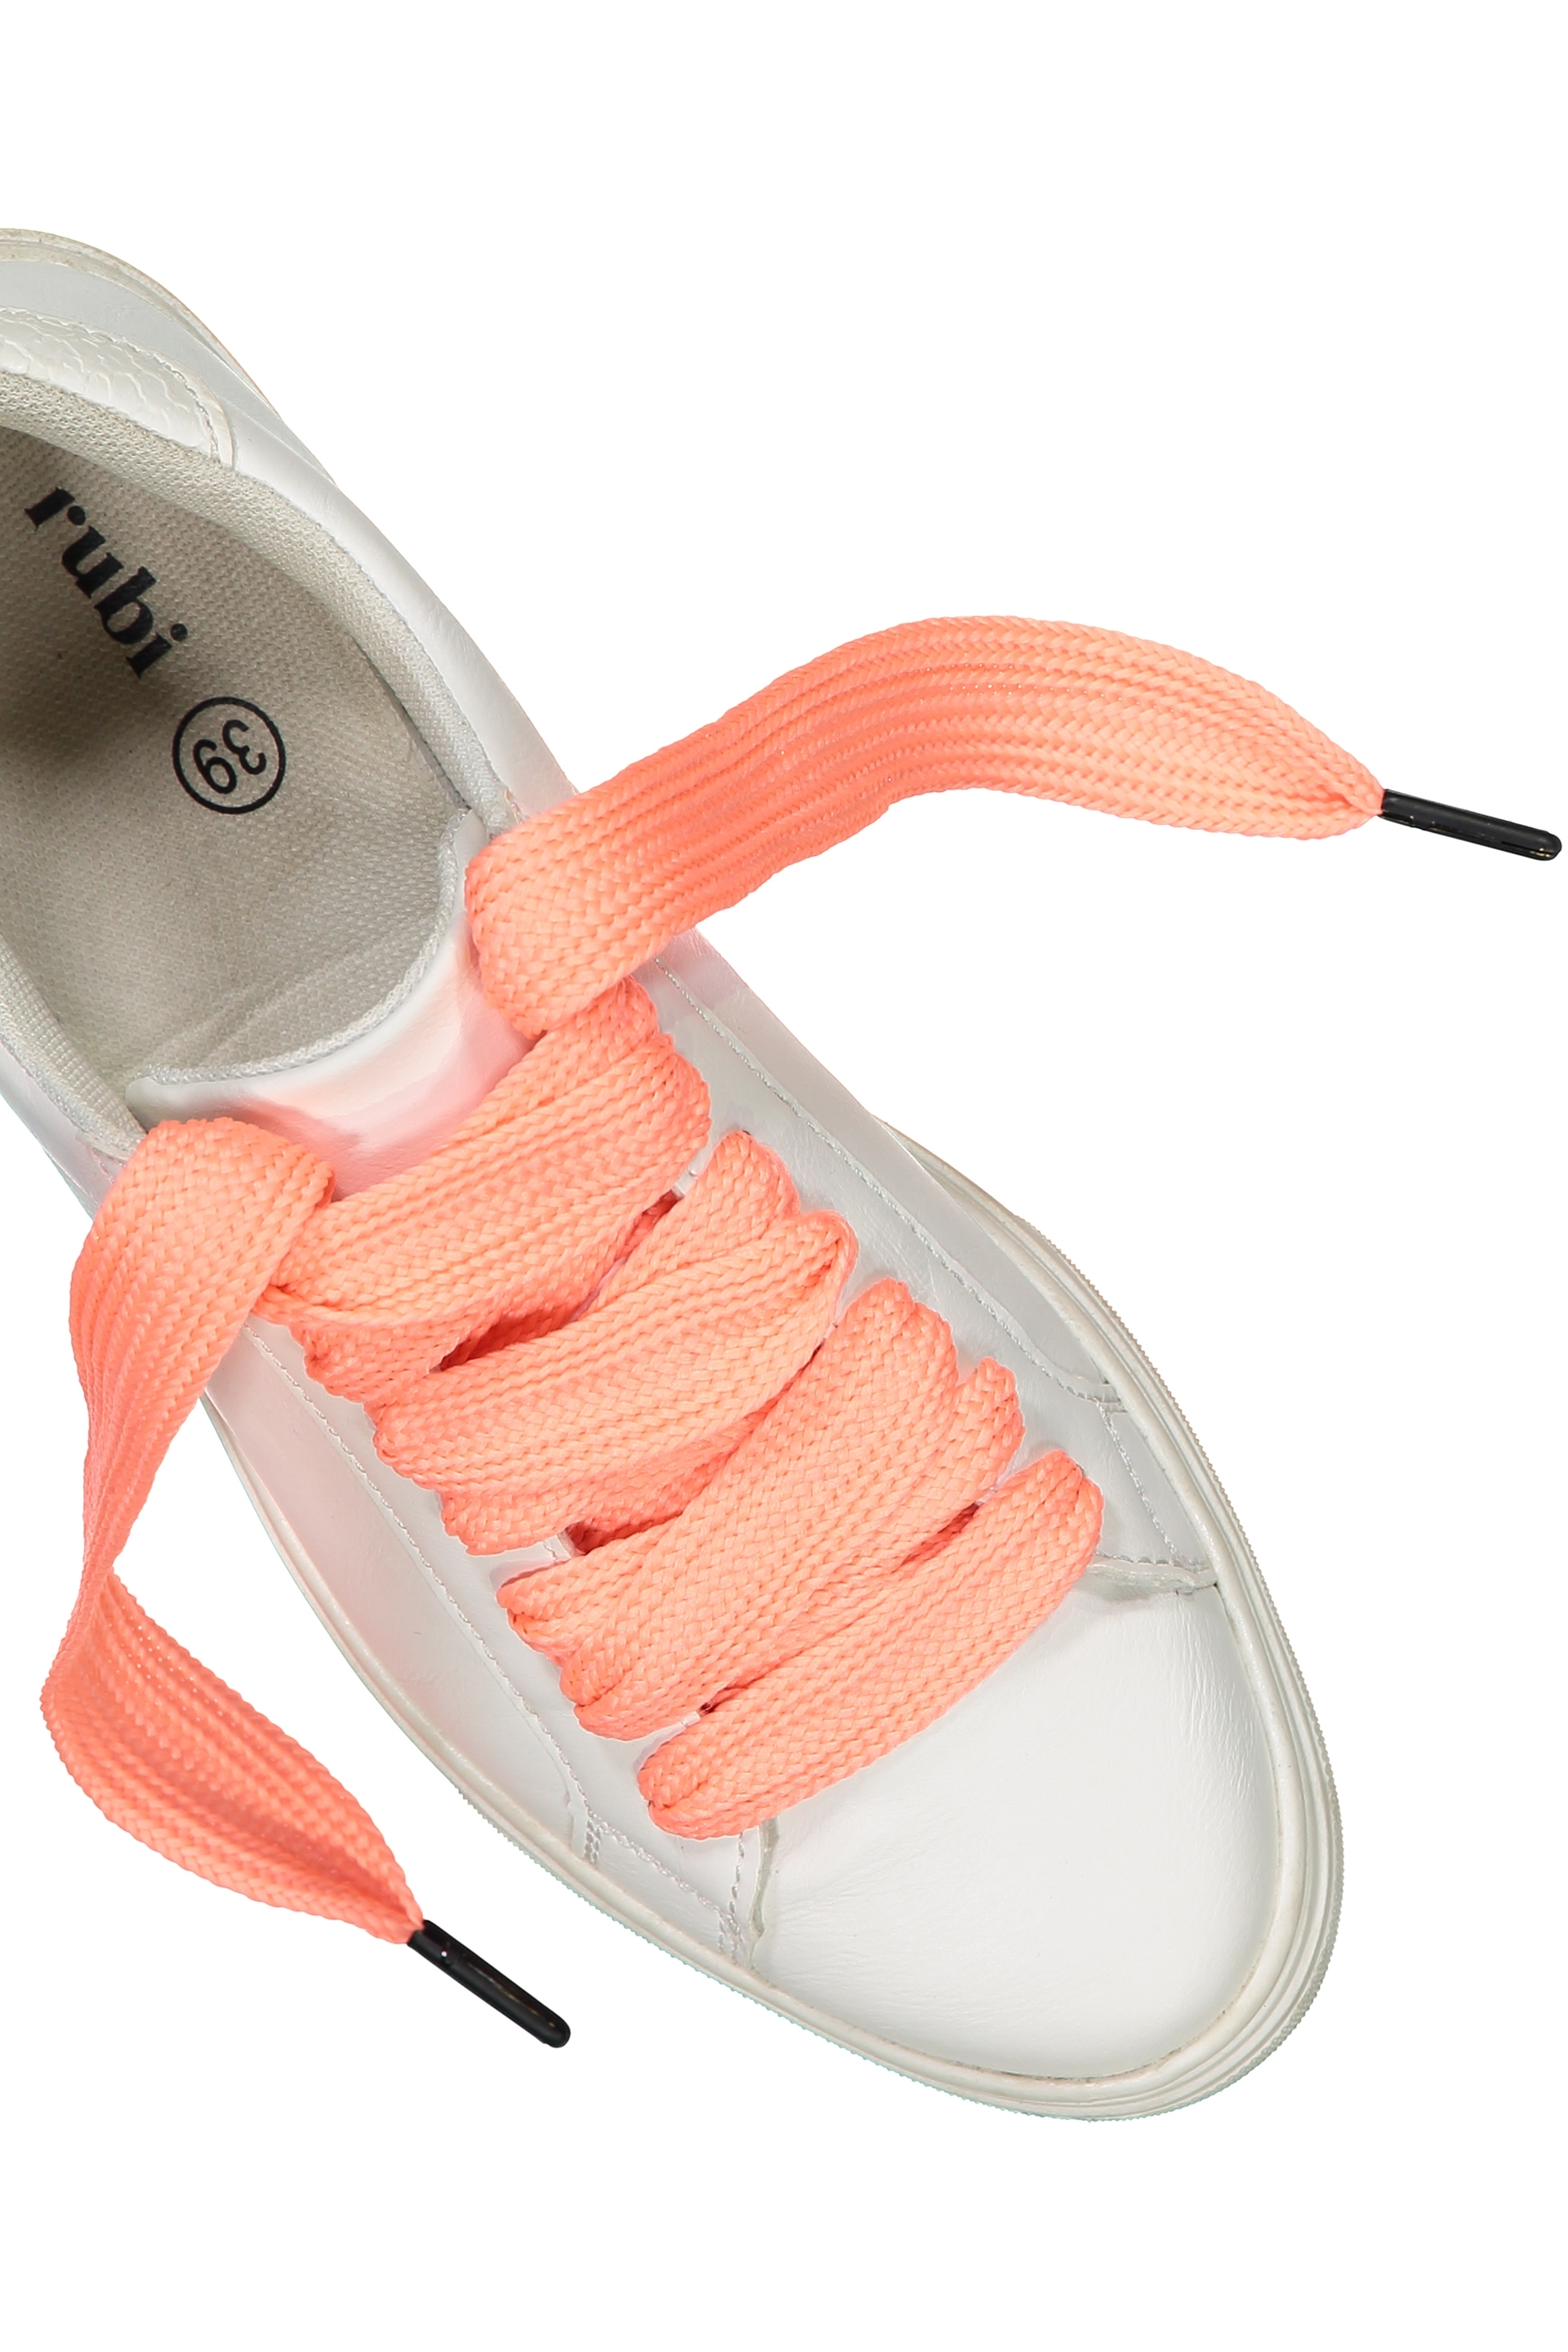 Rubi - Laced Up Shoelaces - Coral herringbone